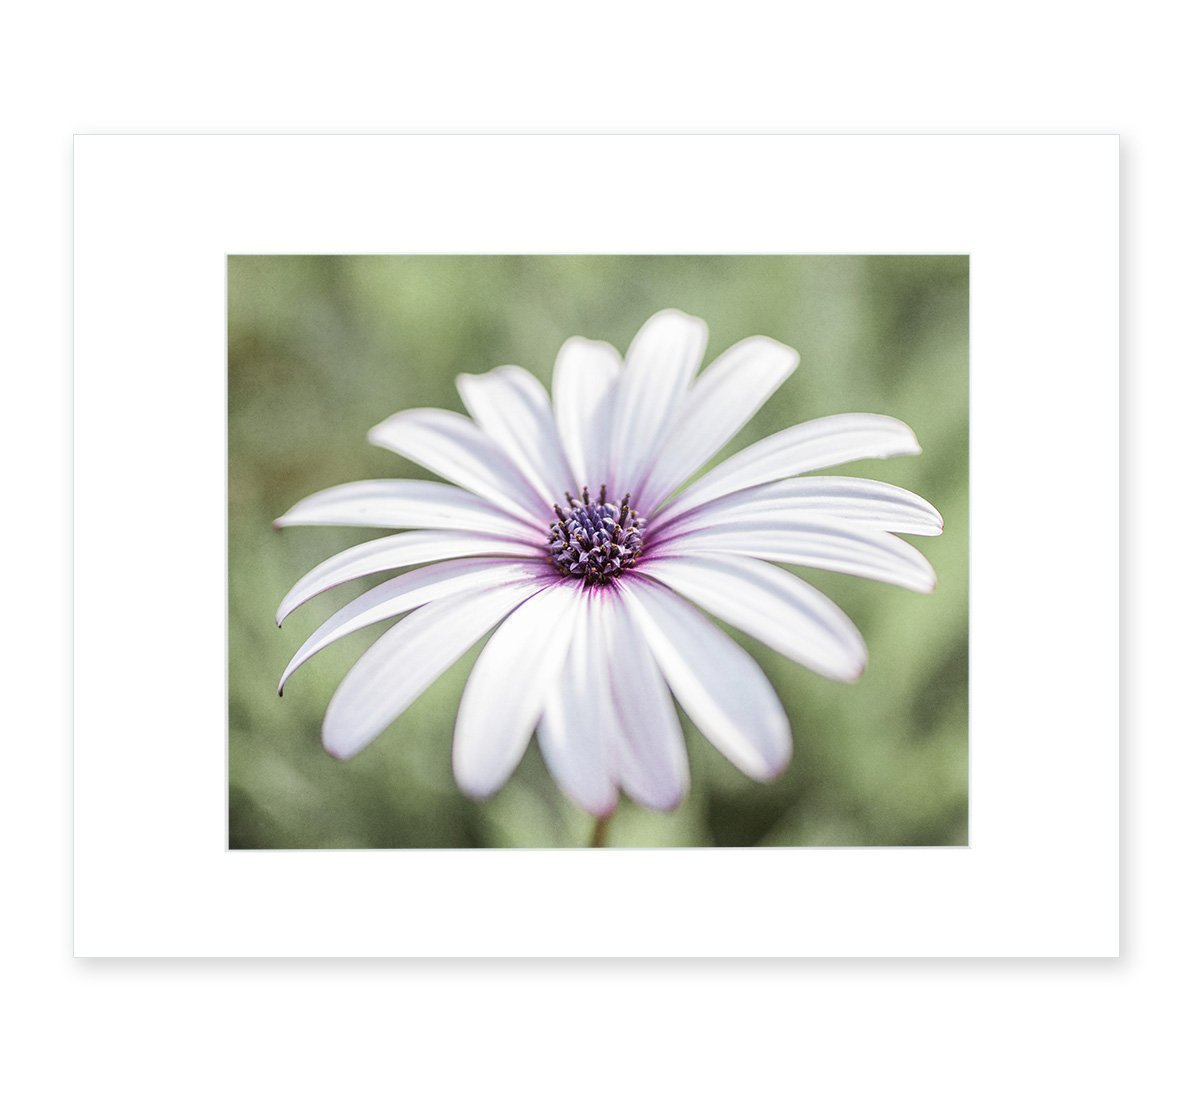 White Daisy Flower Wall Art, Country Cottage Floral Botanical Decor, Girls Bedroom Picture, 8x10 Matted Photographic Print (fits 11x14 frame), 'Pure Daisy'